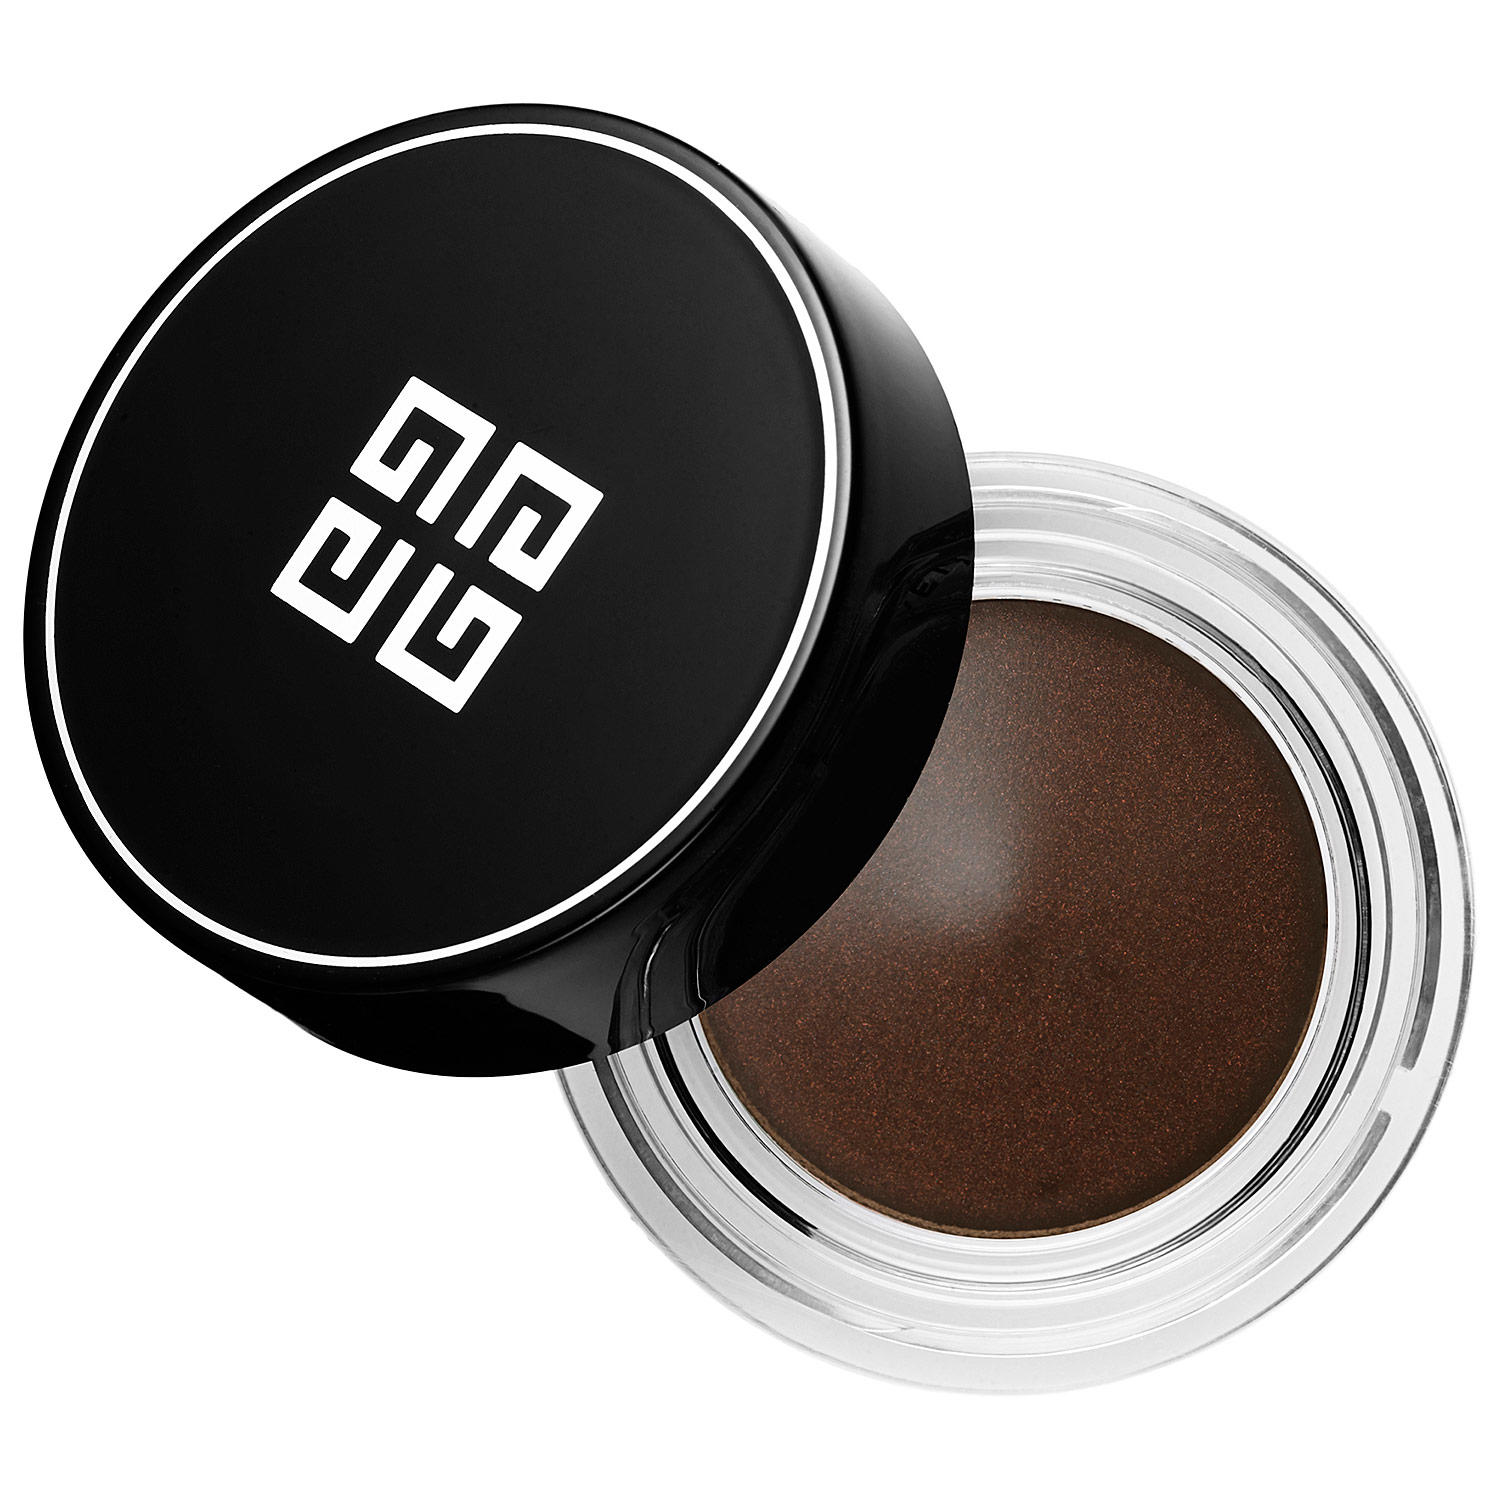 Givenchy Ombre Couture Cream Eyeshadow Brun Cachemire 9